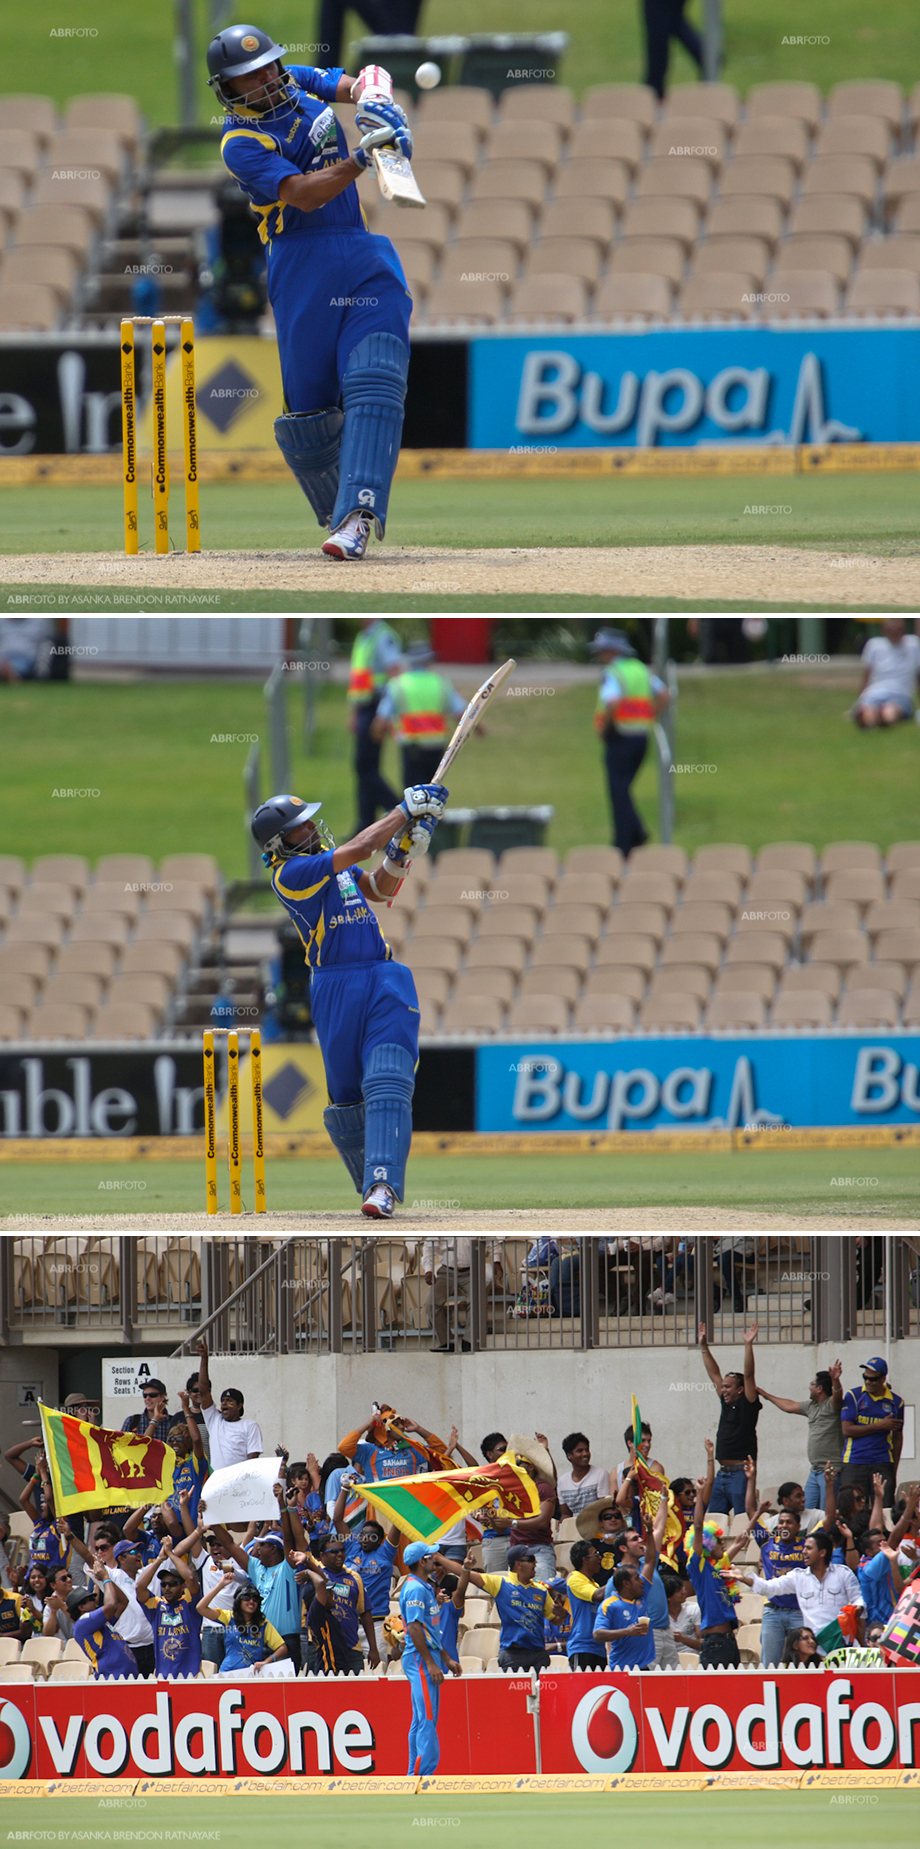 Dilshan pulls one over the ropes for six